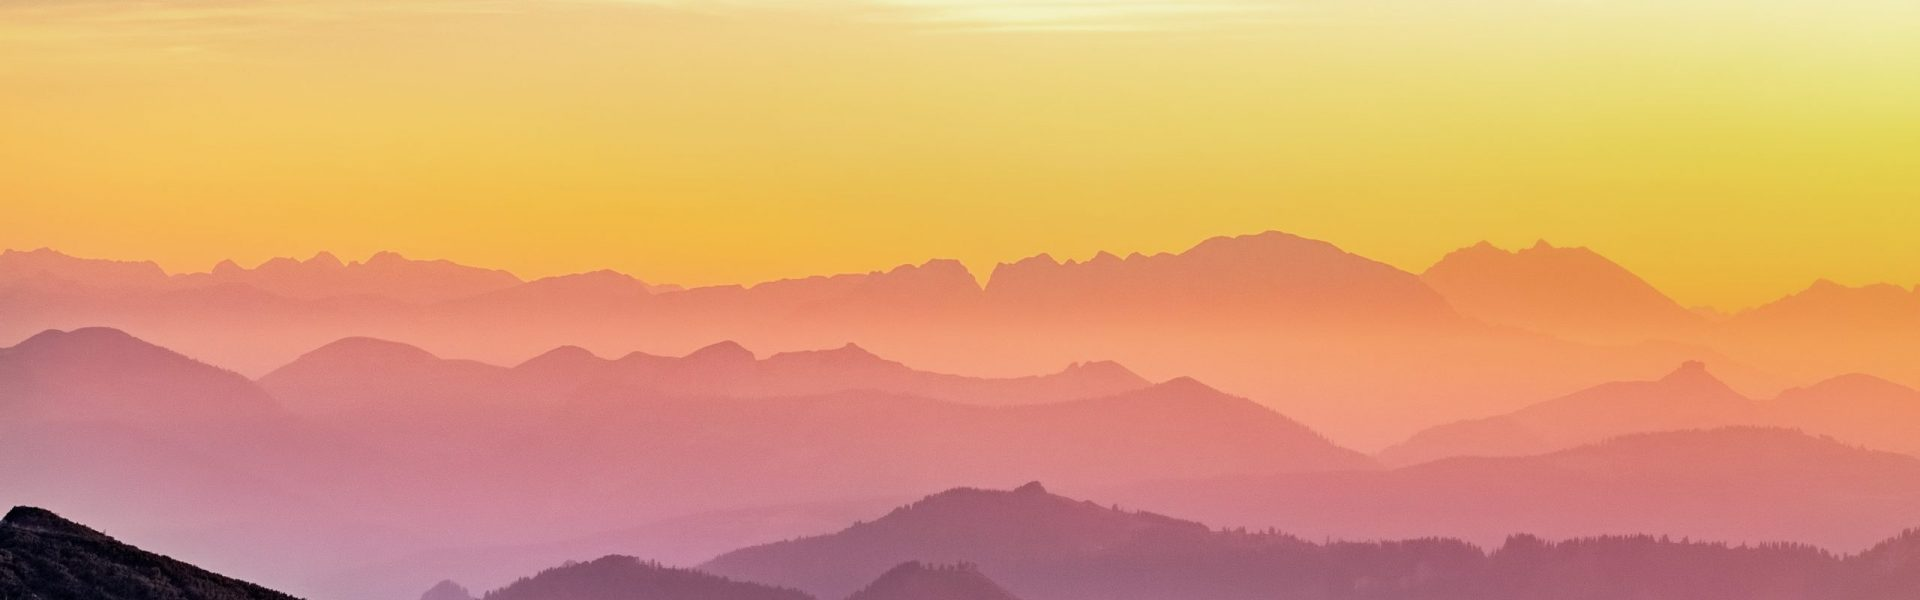 rainbow colored sunset over misty mountains